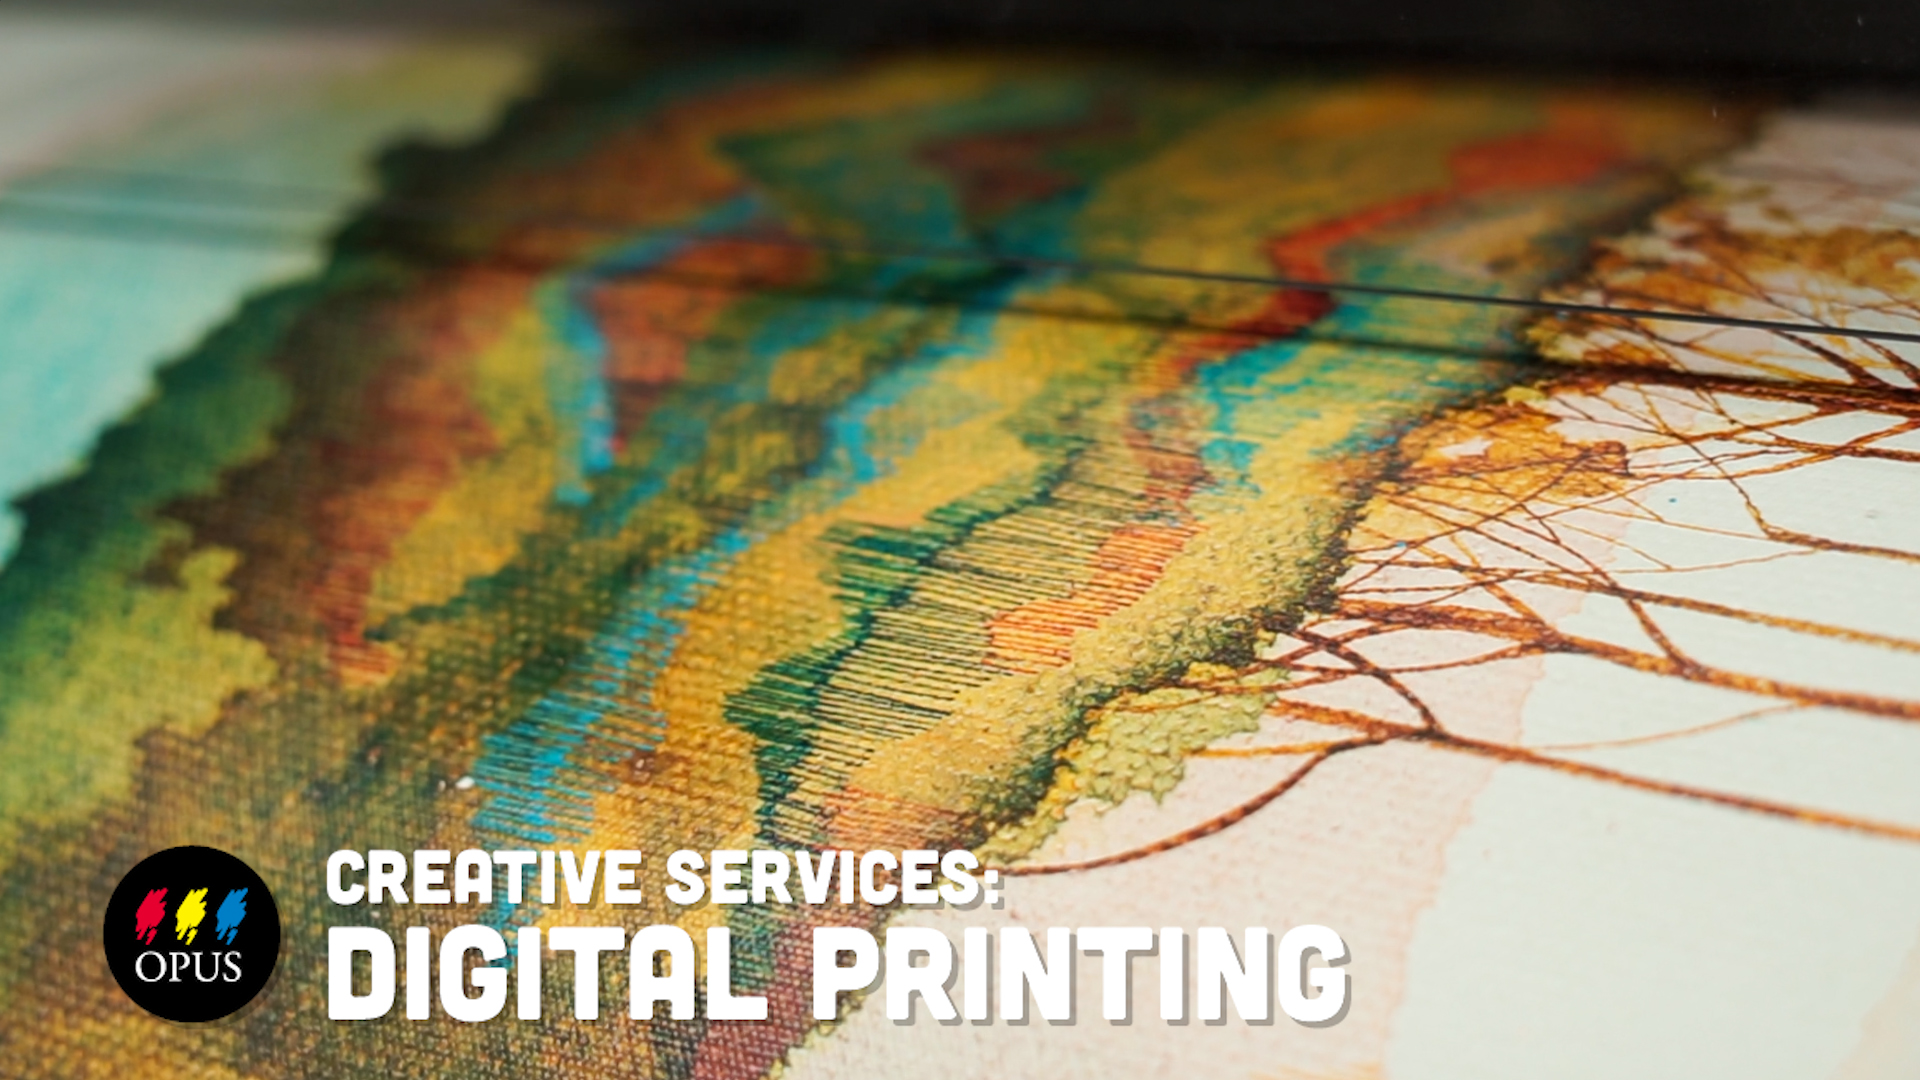 Opus Digital Printing & Mounting Services Video. Click to watch!